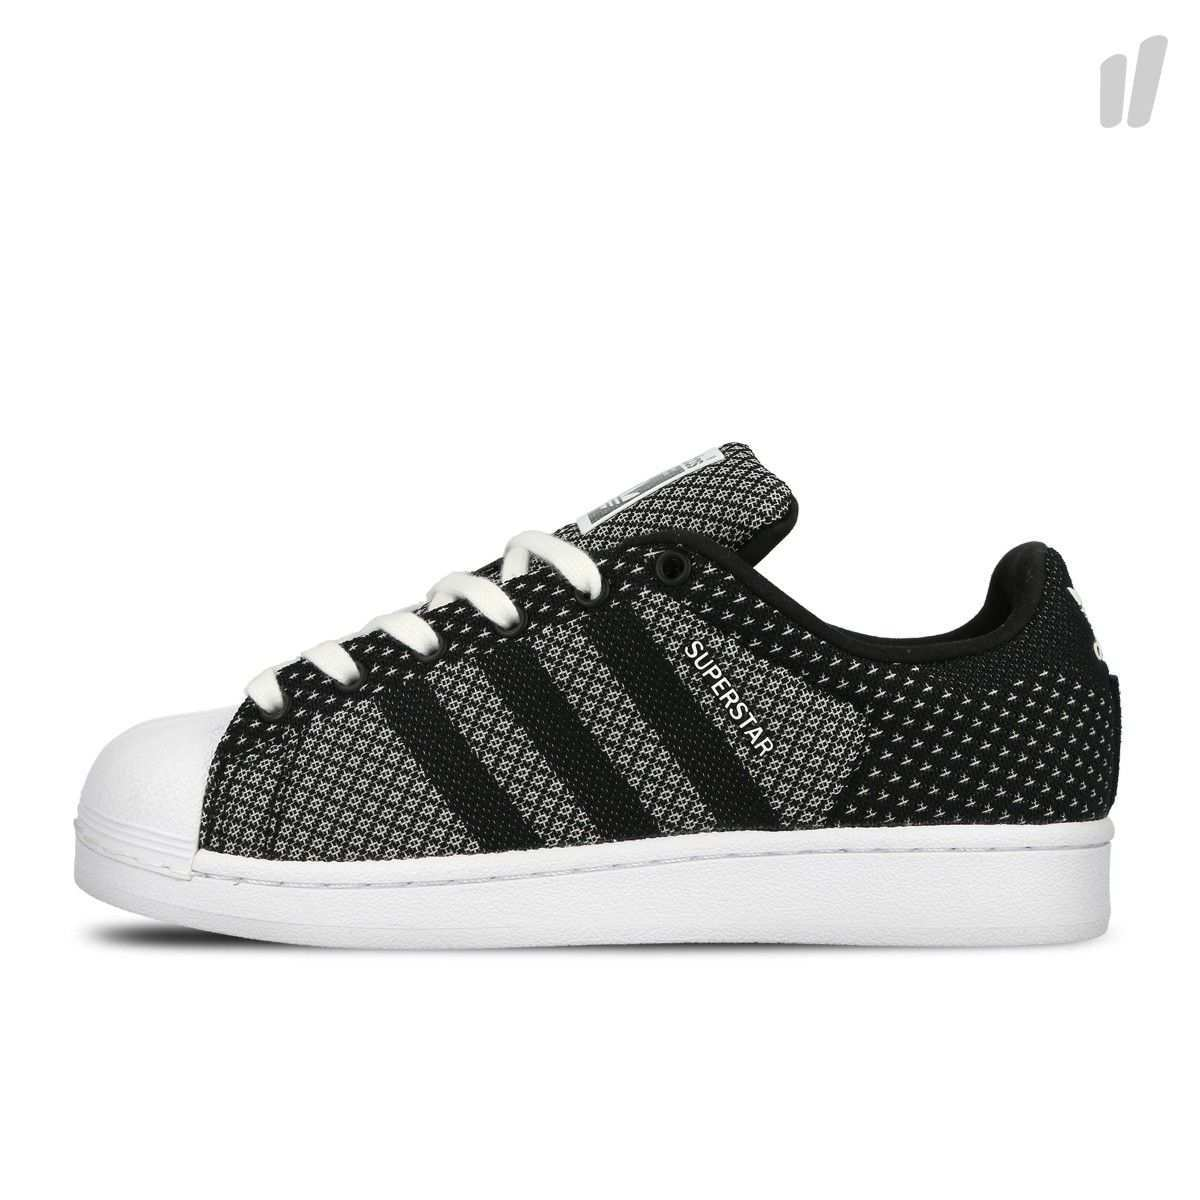 Vintage Style Meets Modern Materials With The Adidas Superstar Weave Updating The Iconic Shoe With A Lightweight One Piece W Adidas Superstar Adidas Streifen